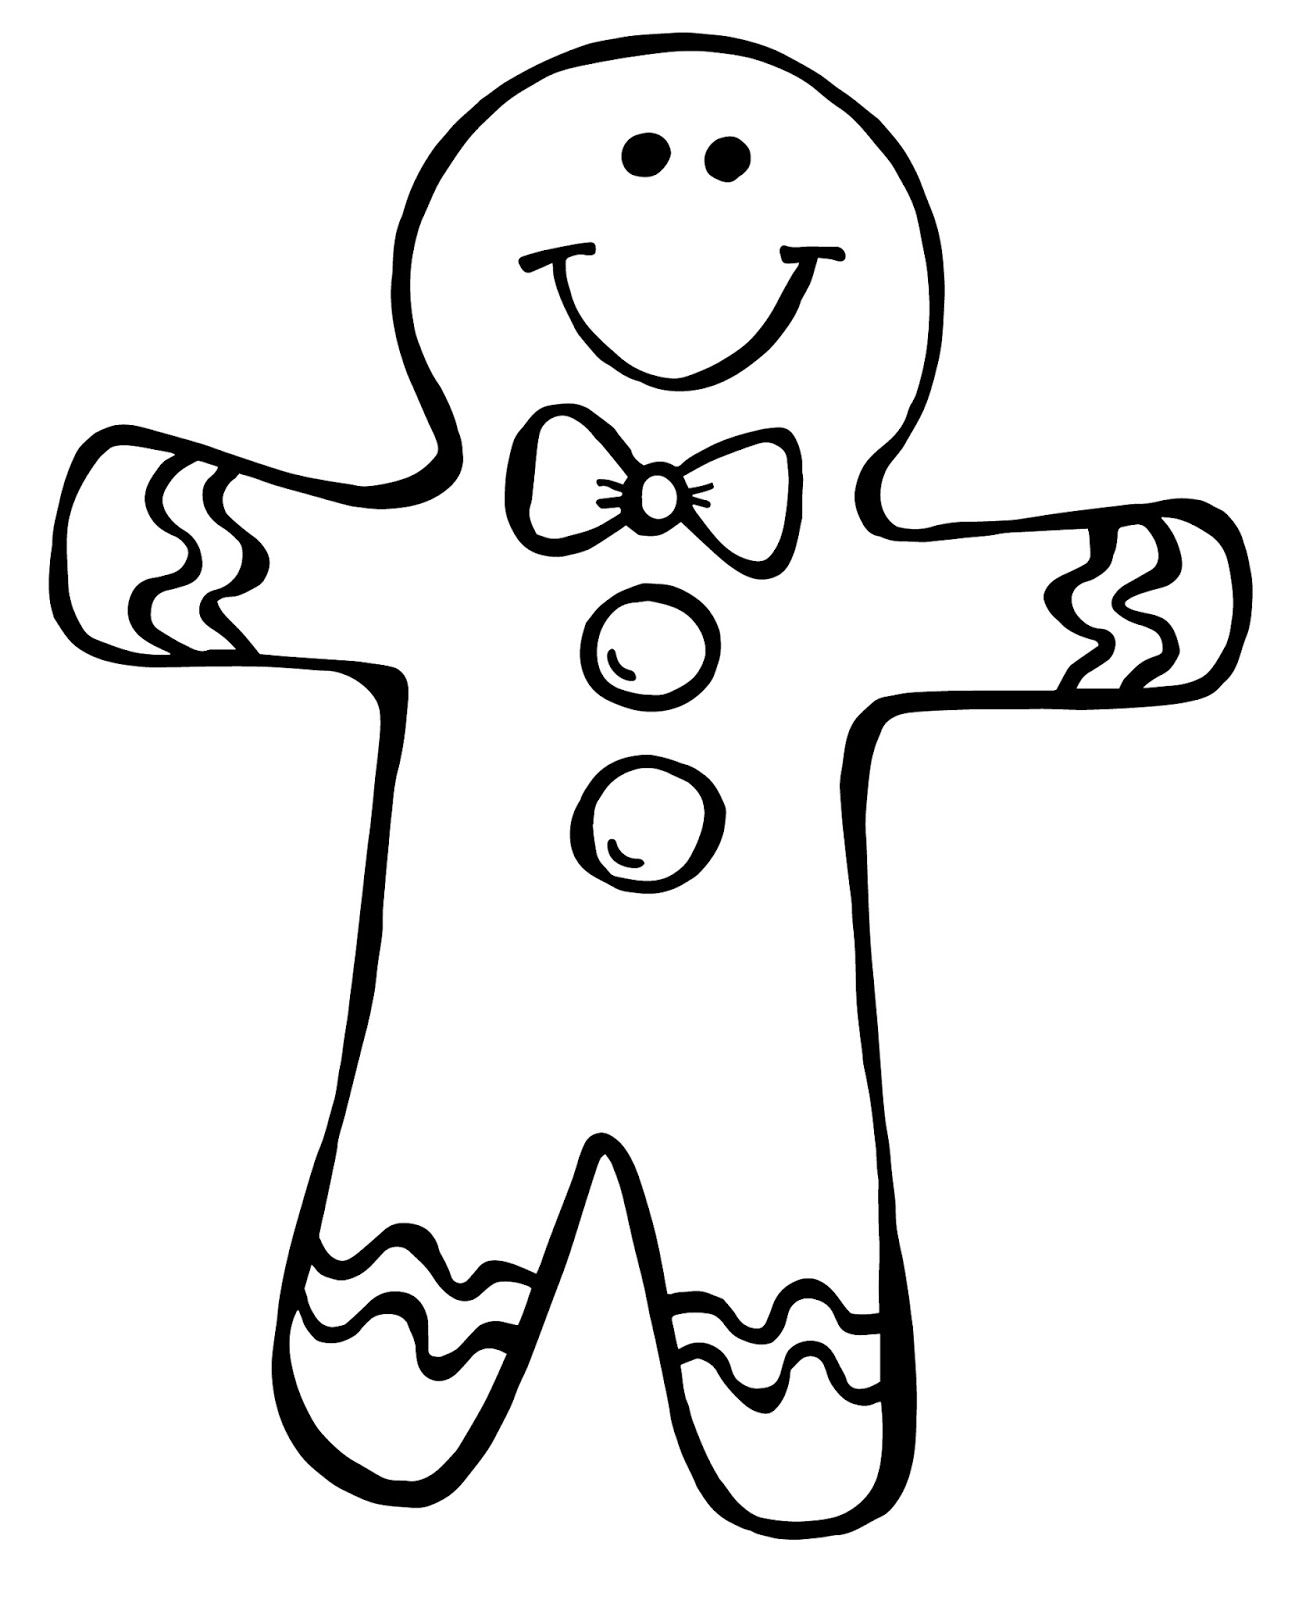 gingerbread girl template printable - Google Search ...